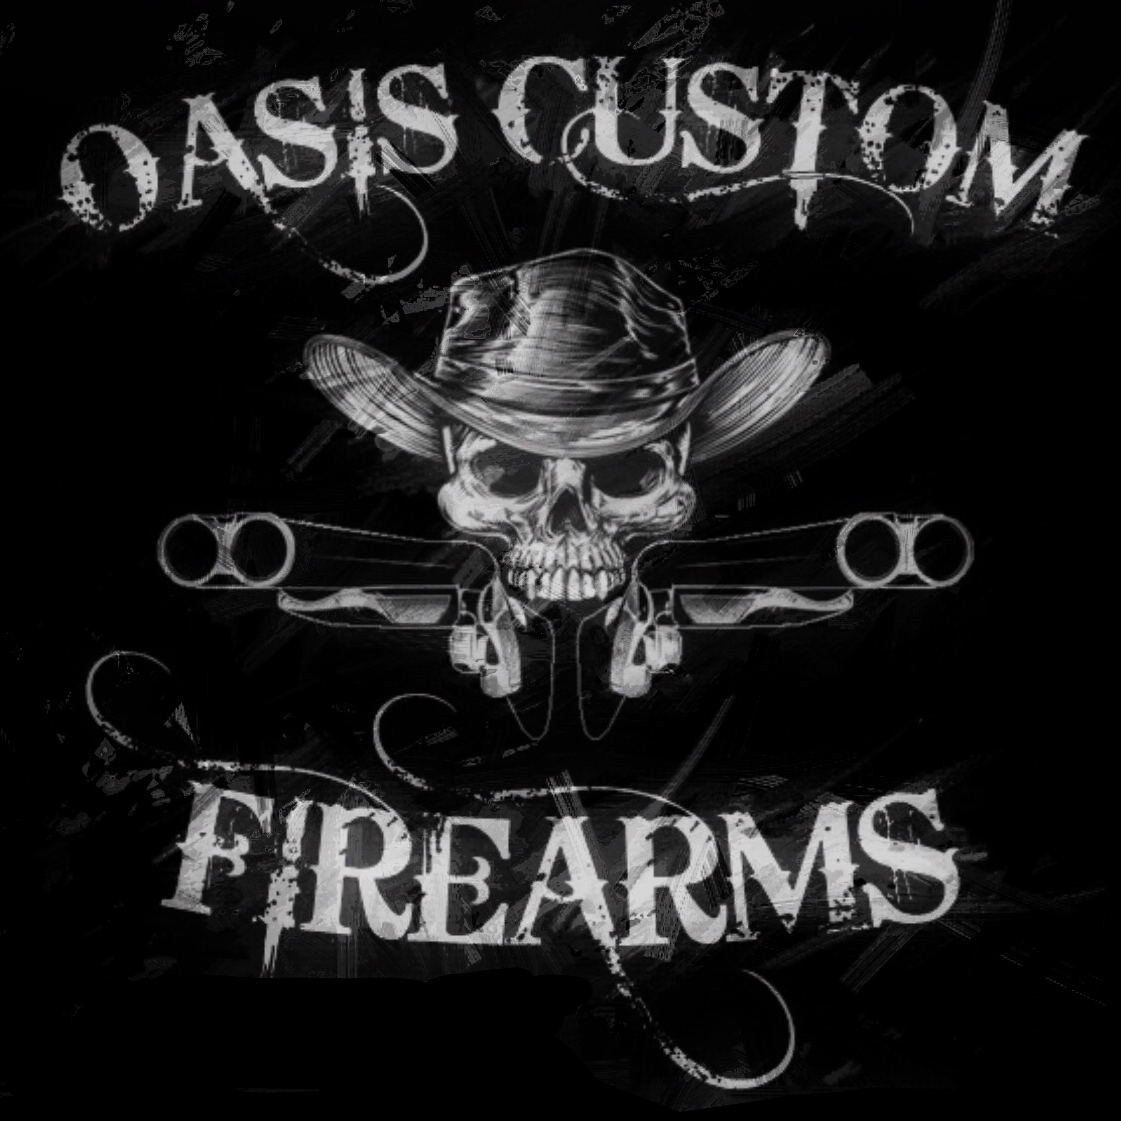 Oasis Custom Firearms